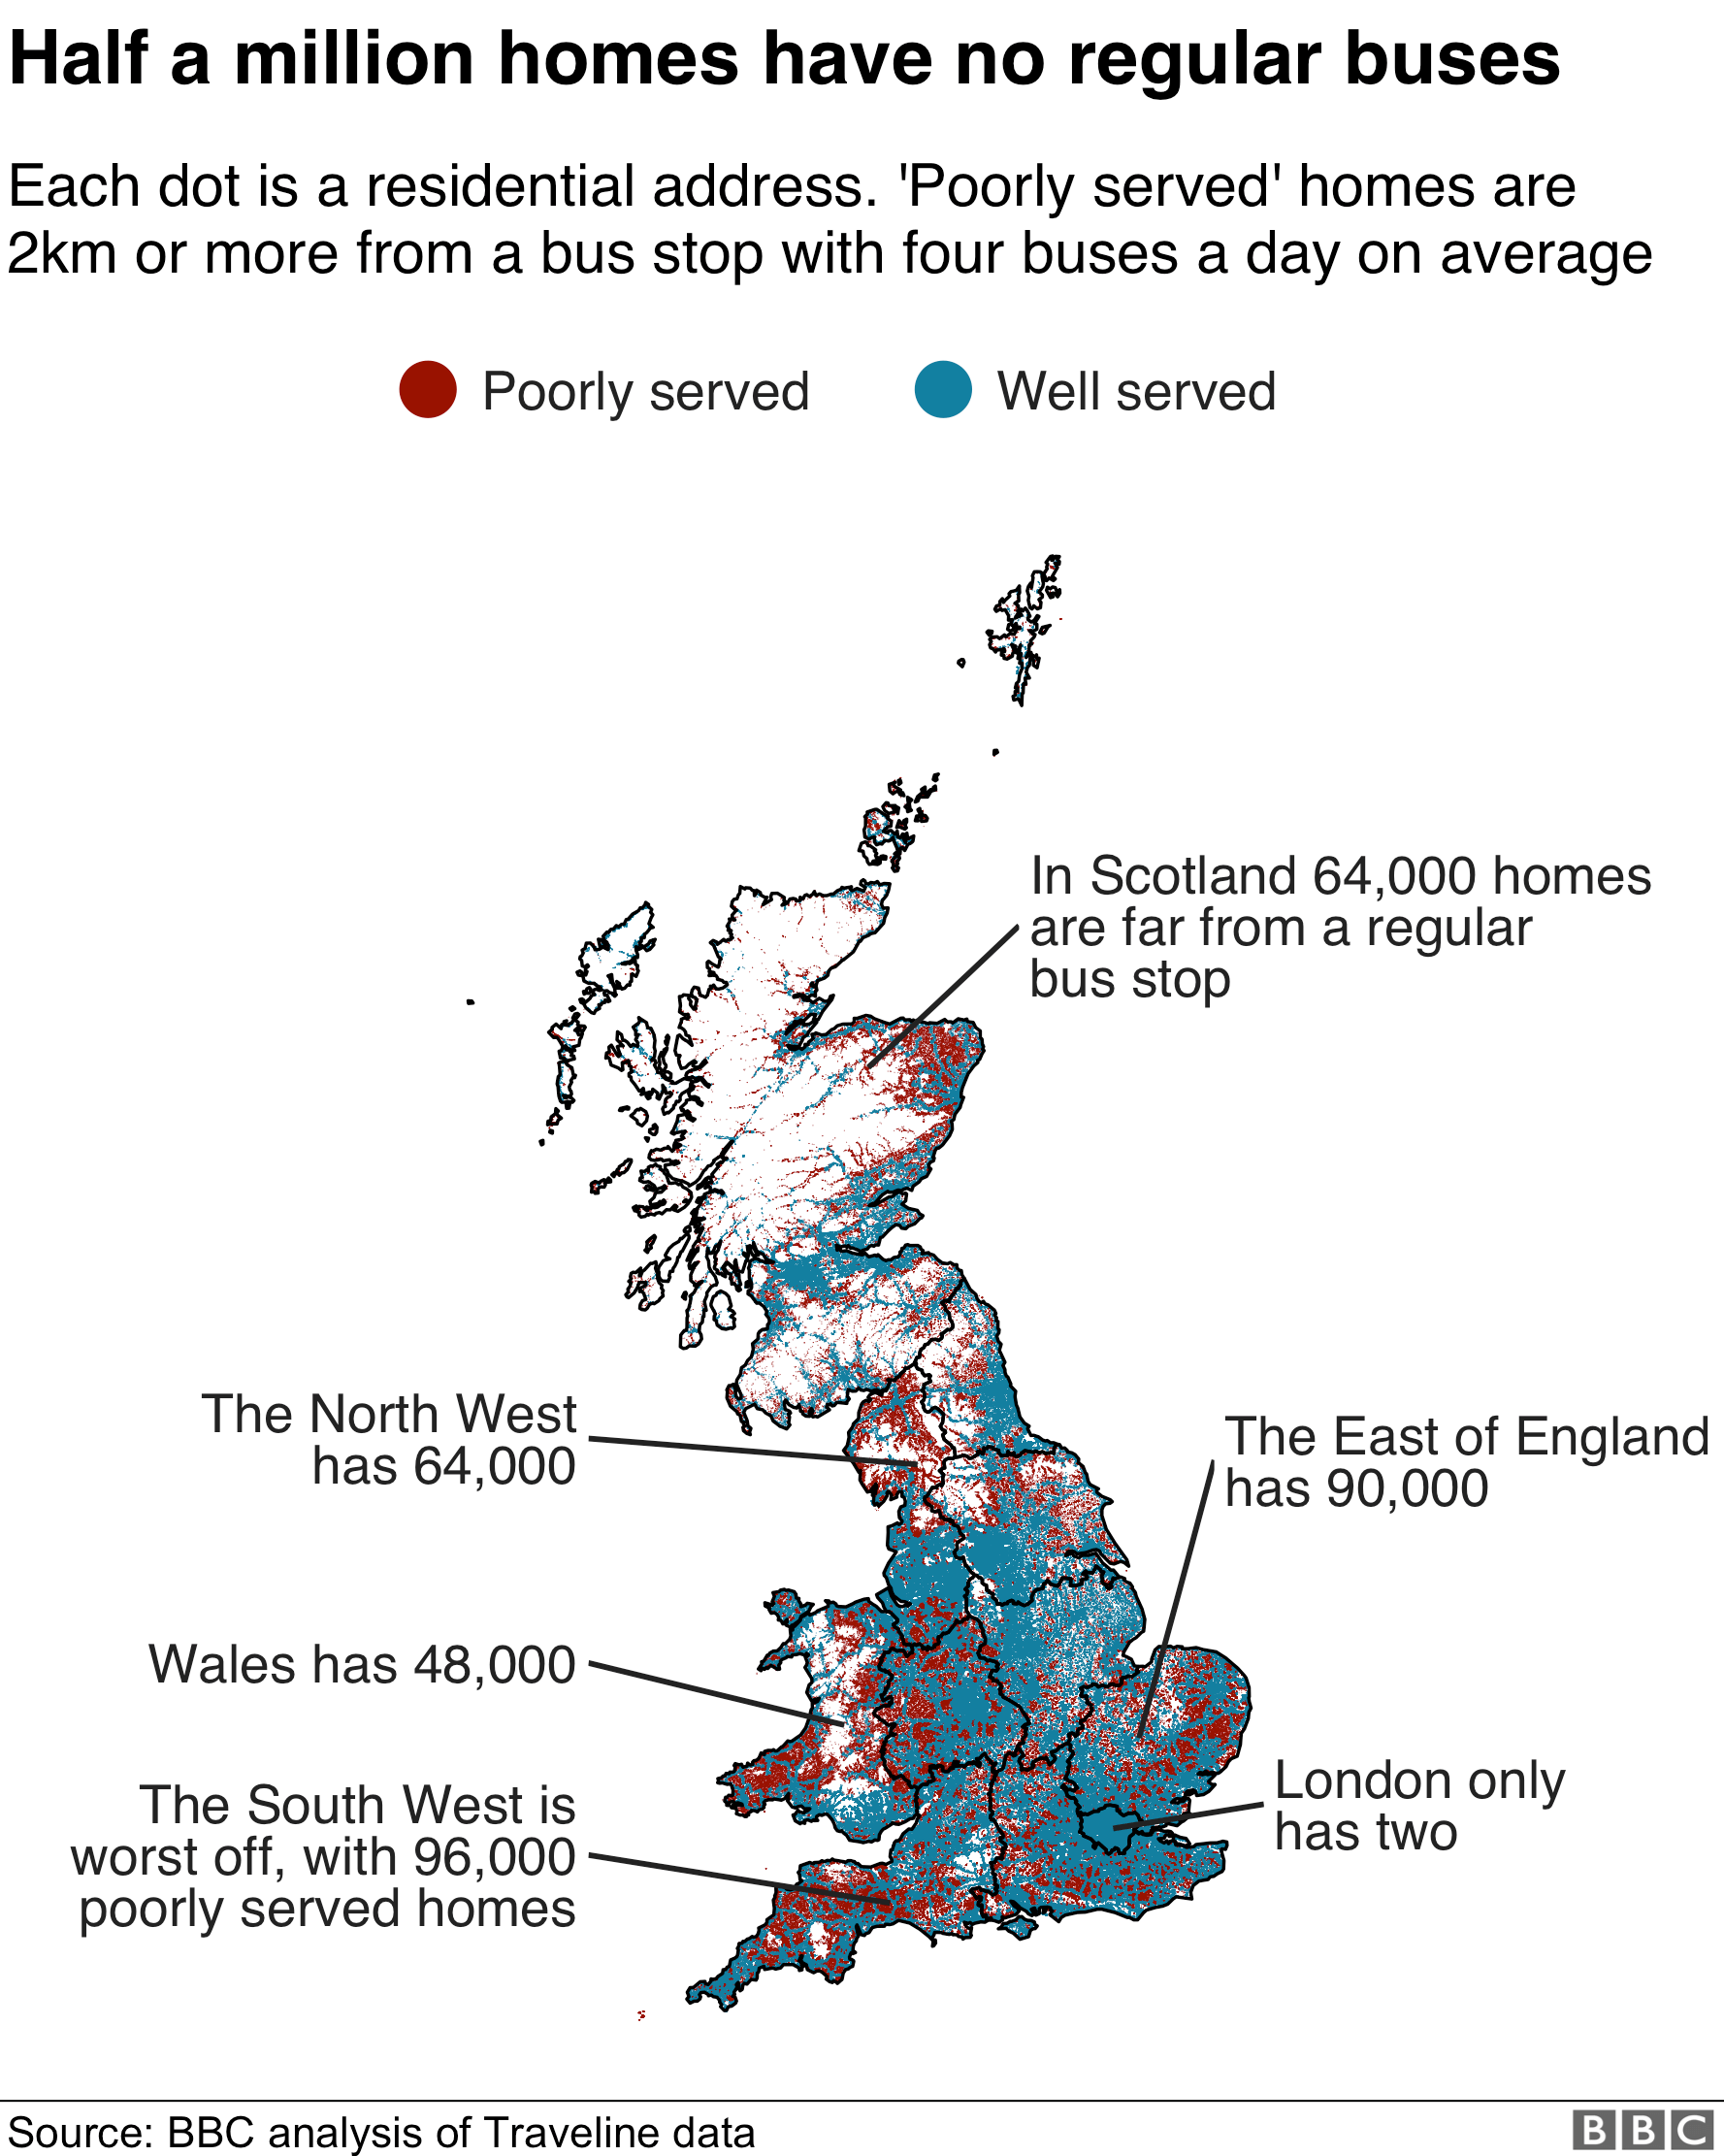 Map showing areas where houses are not served by a regular bus